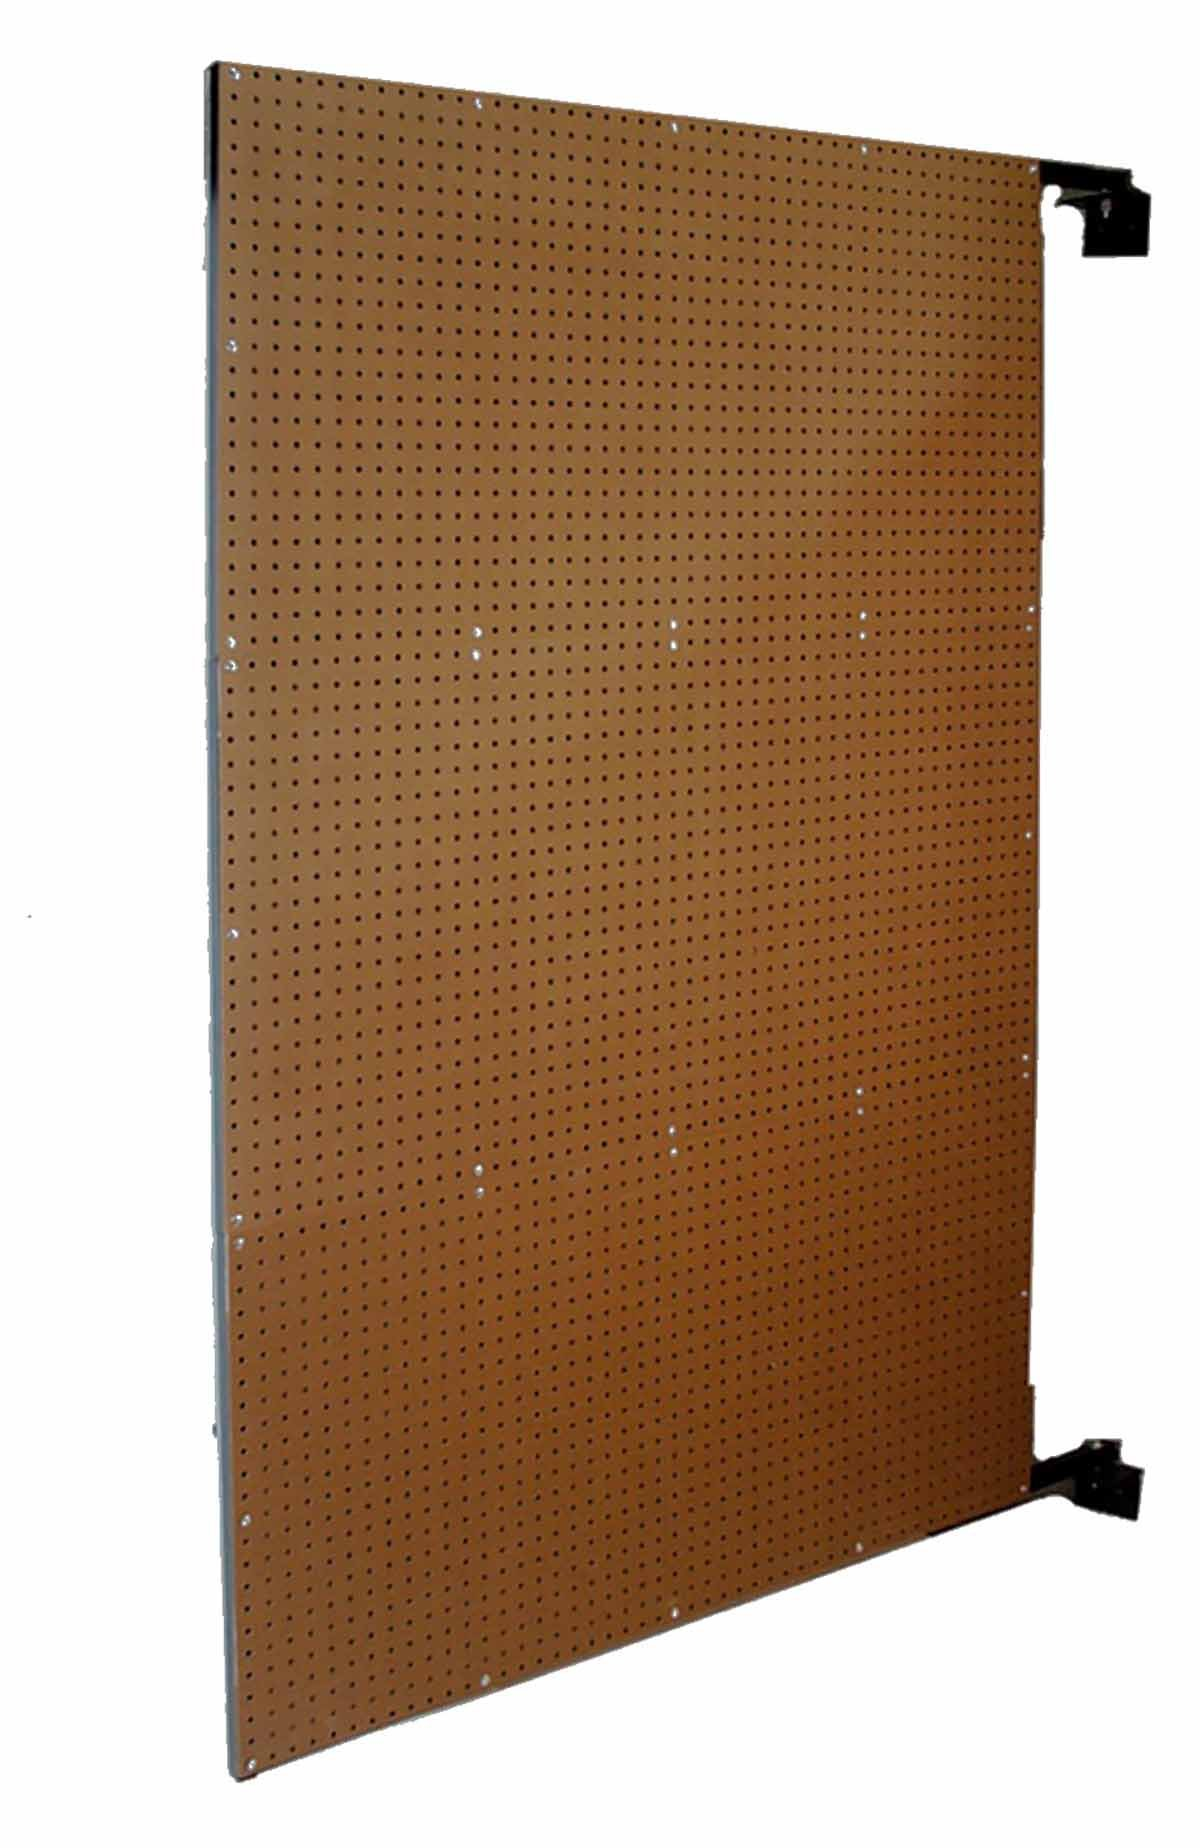 Triton Products W-1 XtraWall Wall Mount Double-Sided Swing Panel Pegboard 48 Inch W x 72 Inch H x 1-1/2 Inch D